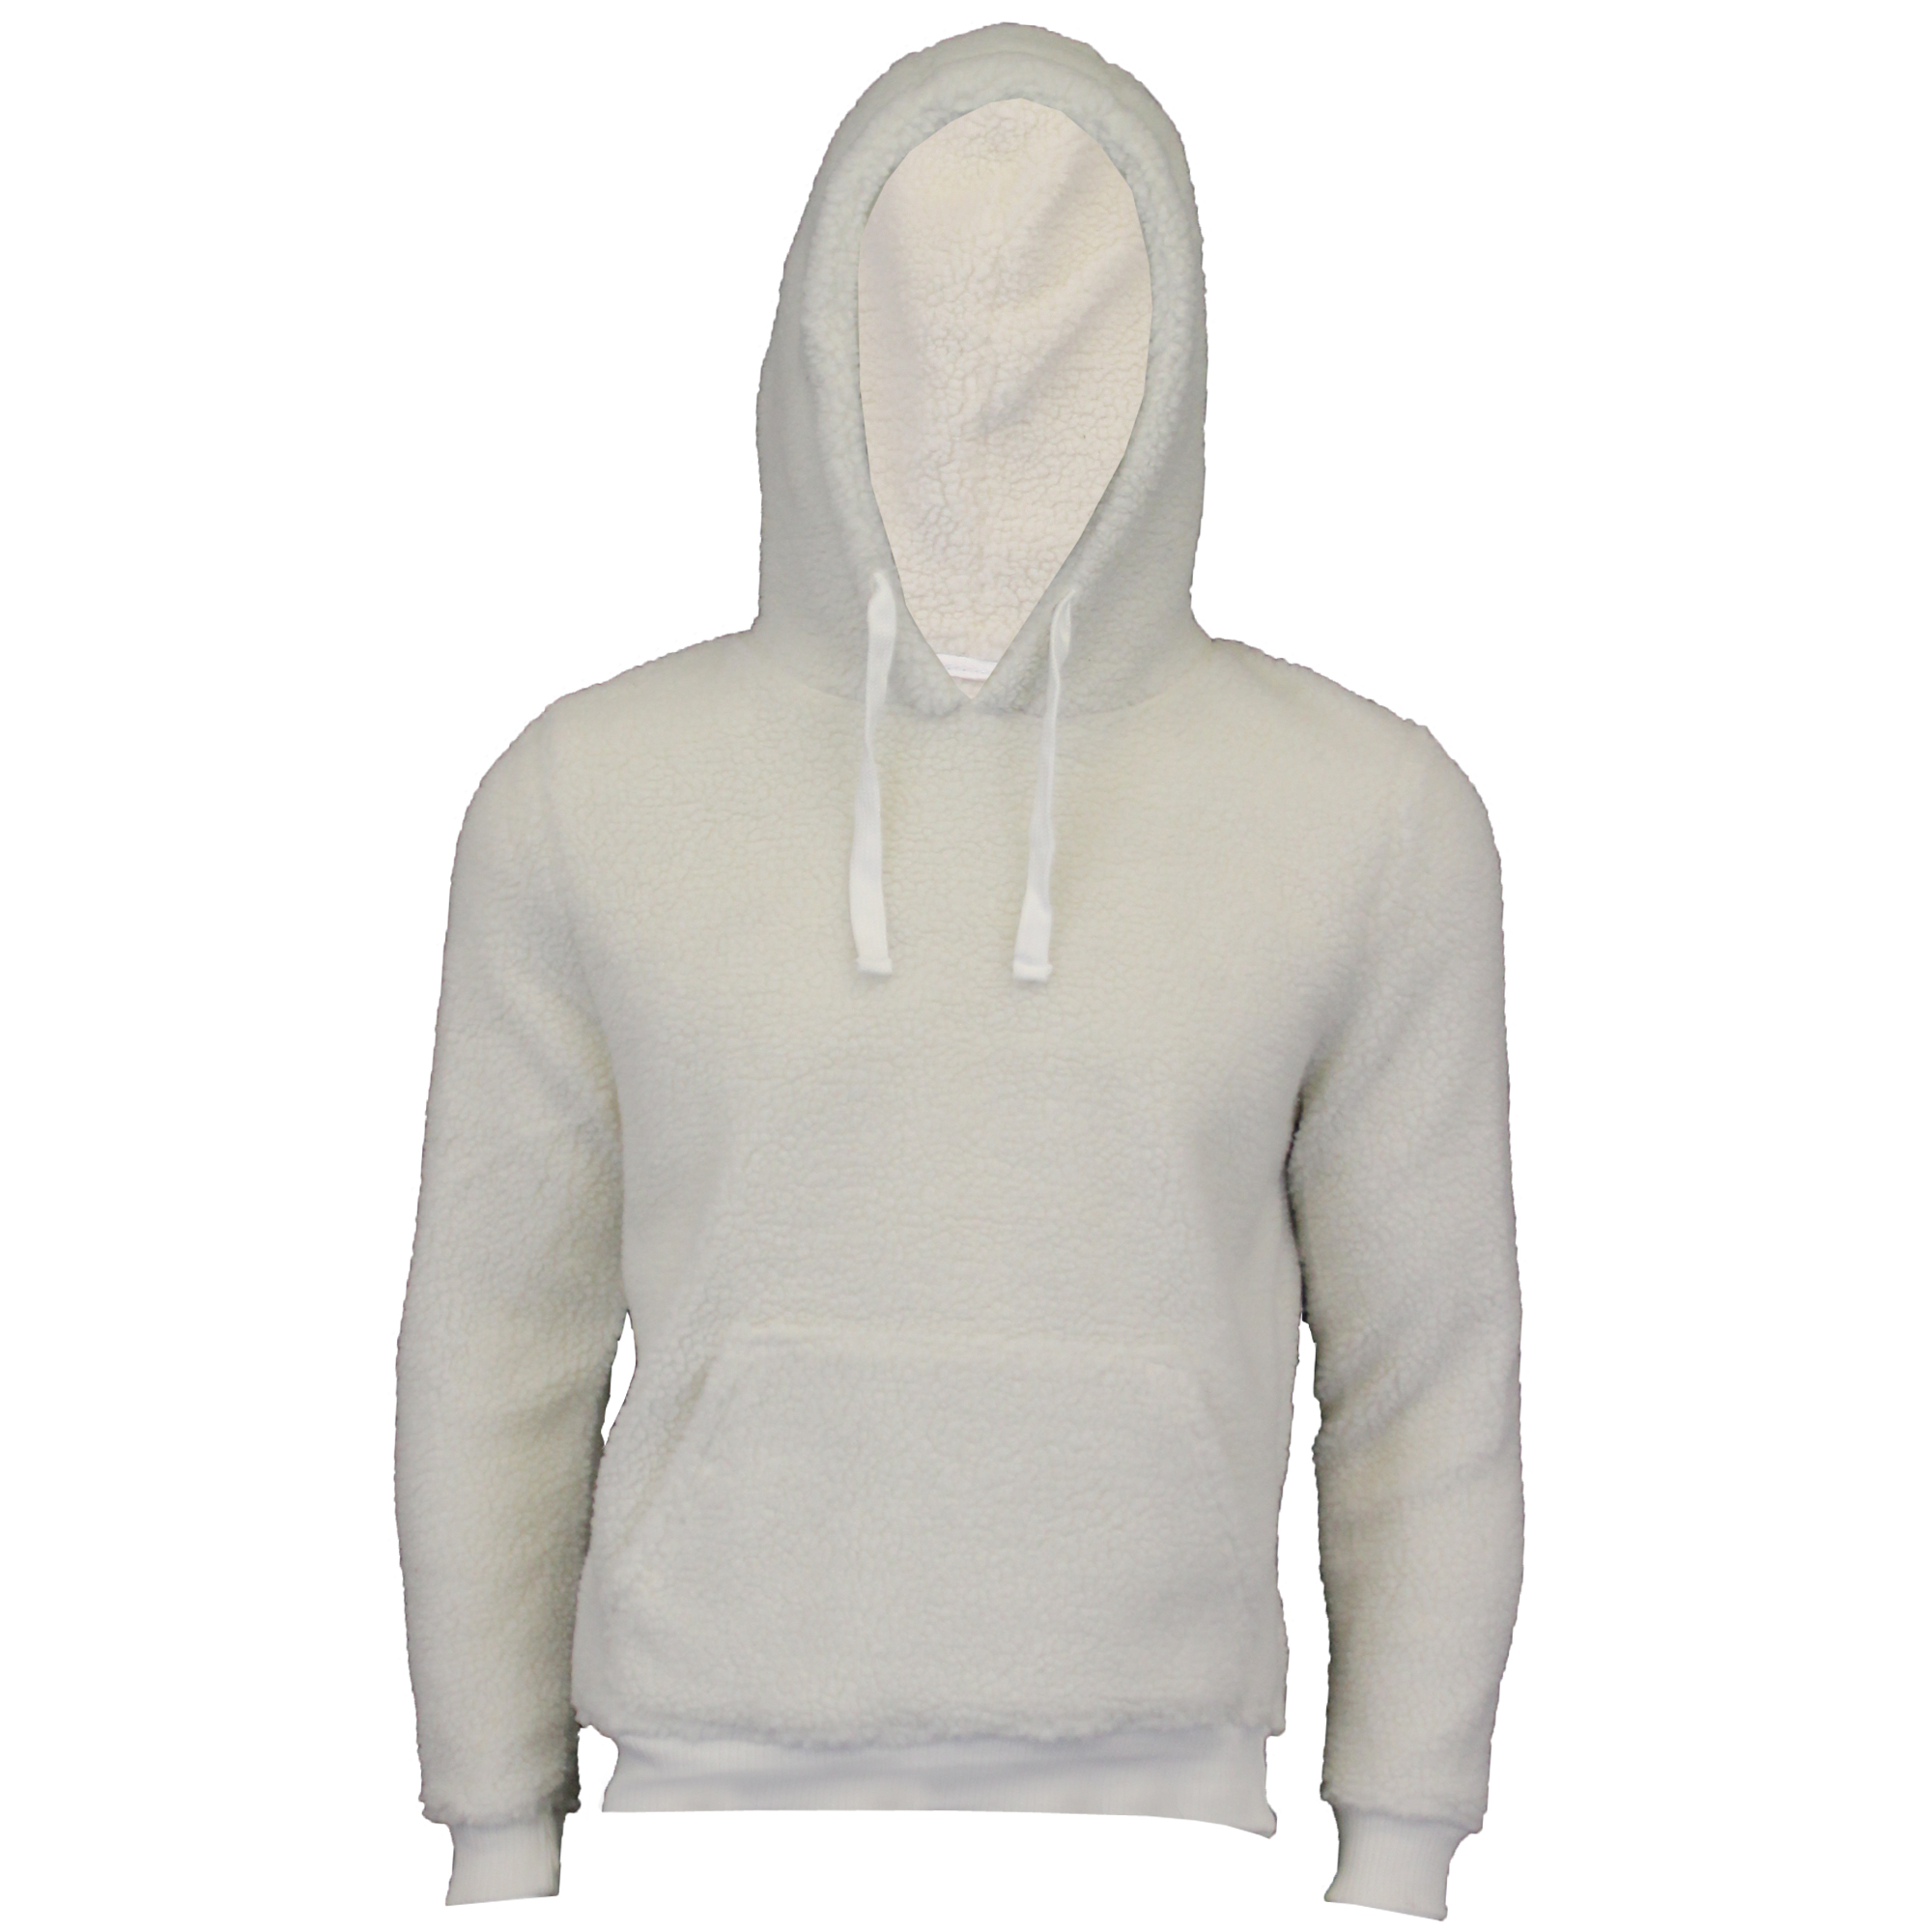 Mens-Sherpa-Fleece-Borg-Sweatshirt-Brave-Soul-Over-The-Head-GROMIT-Hooded-Top thumbnail 3